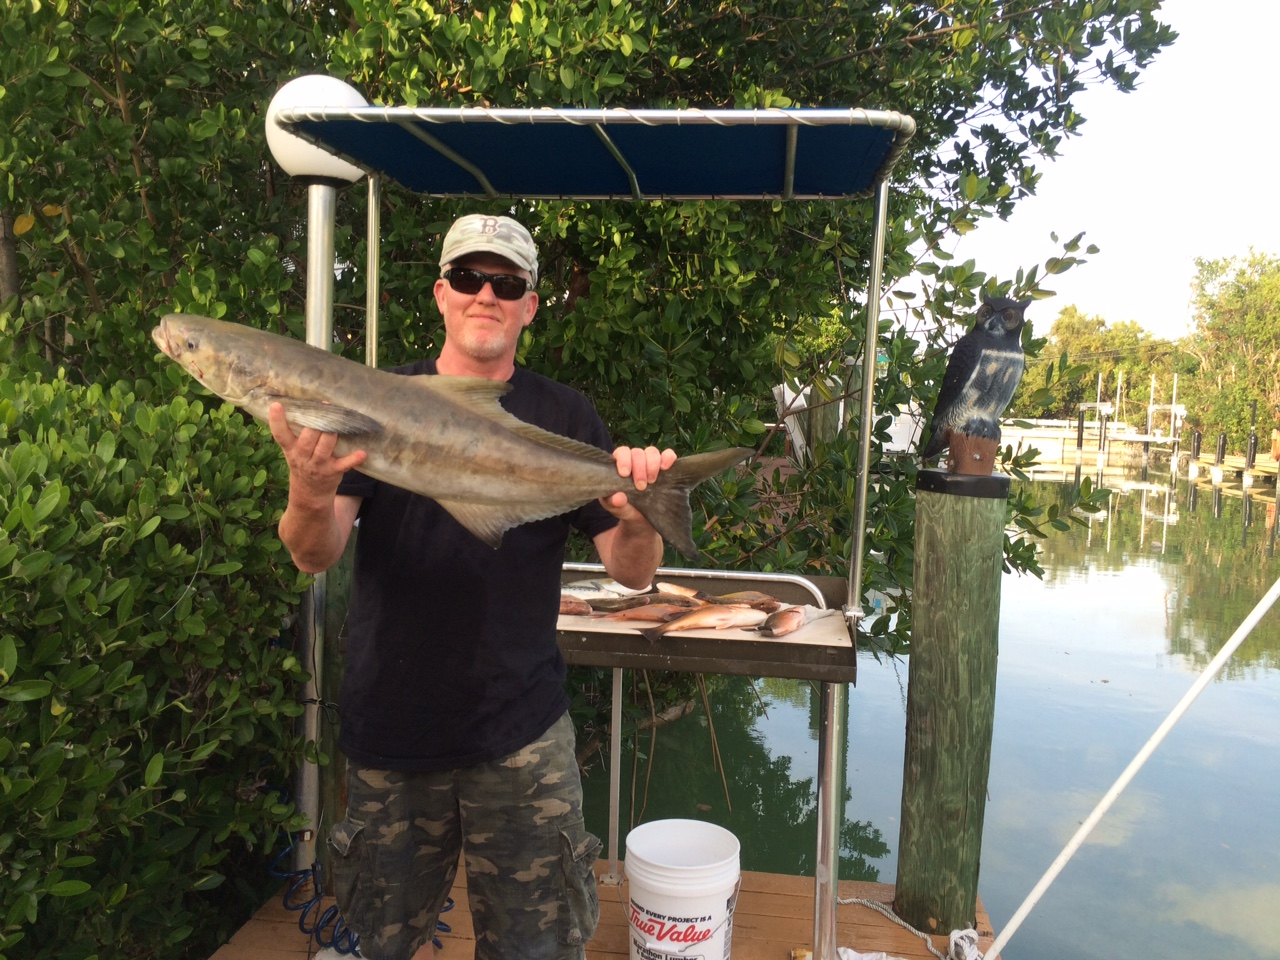 Bryan caught his cobia fishing a Gulf wreck off Marathon in the Fl Keys. Come book your next fishing charter with Capt. Doug.